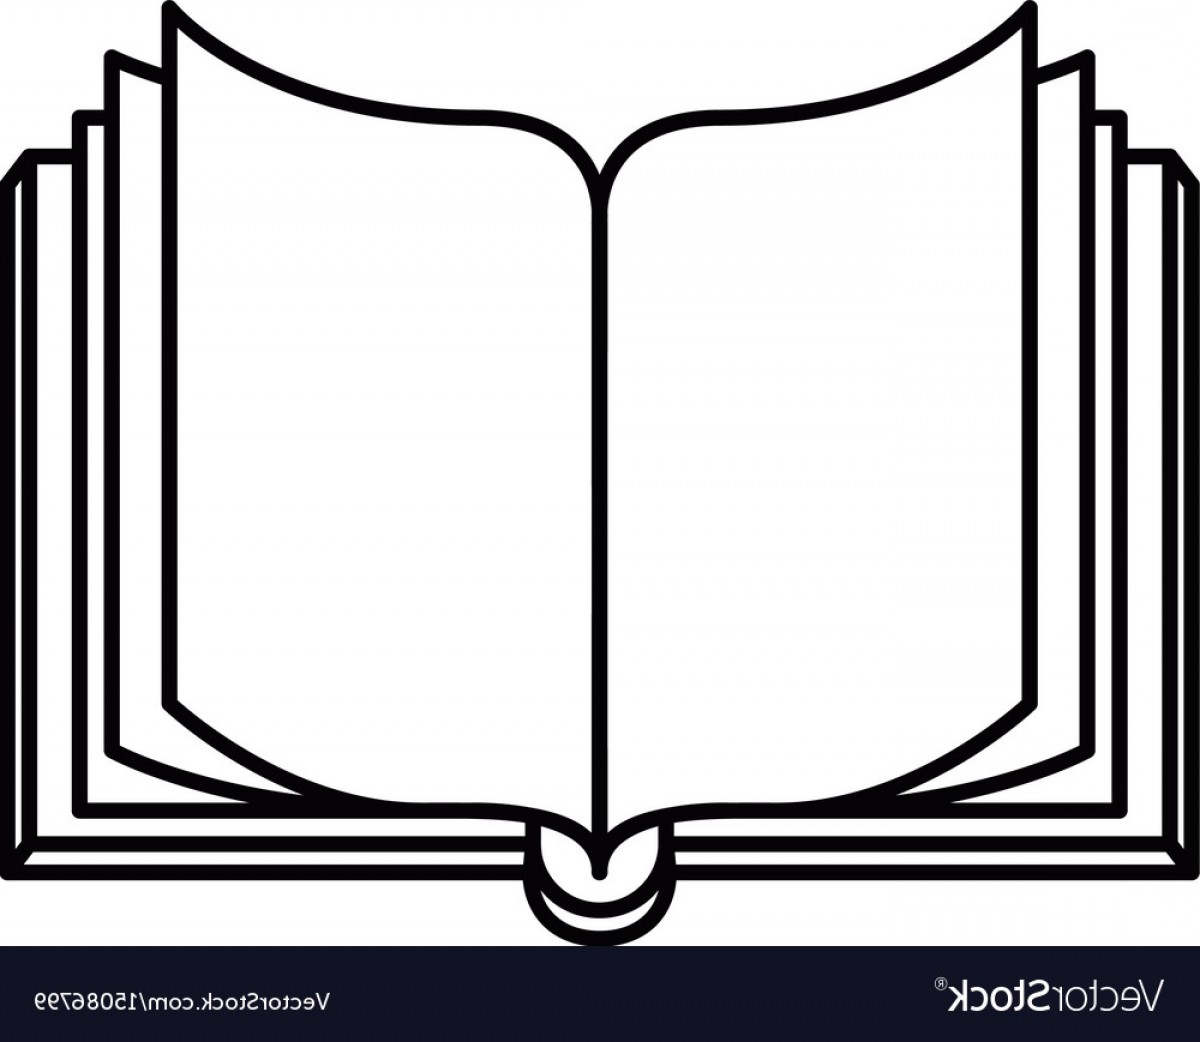 1200x1042 Sketch Silhouette Image Front View Open Book Vector Shopatcloth